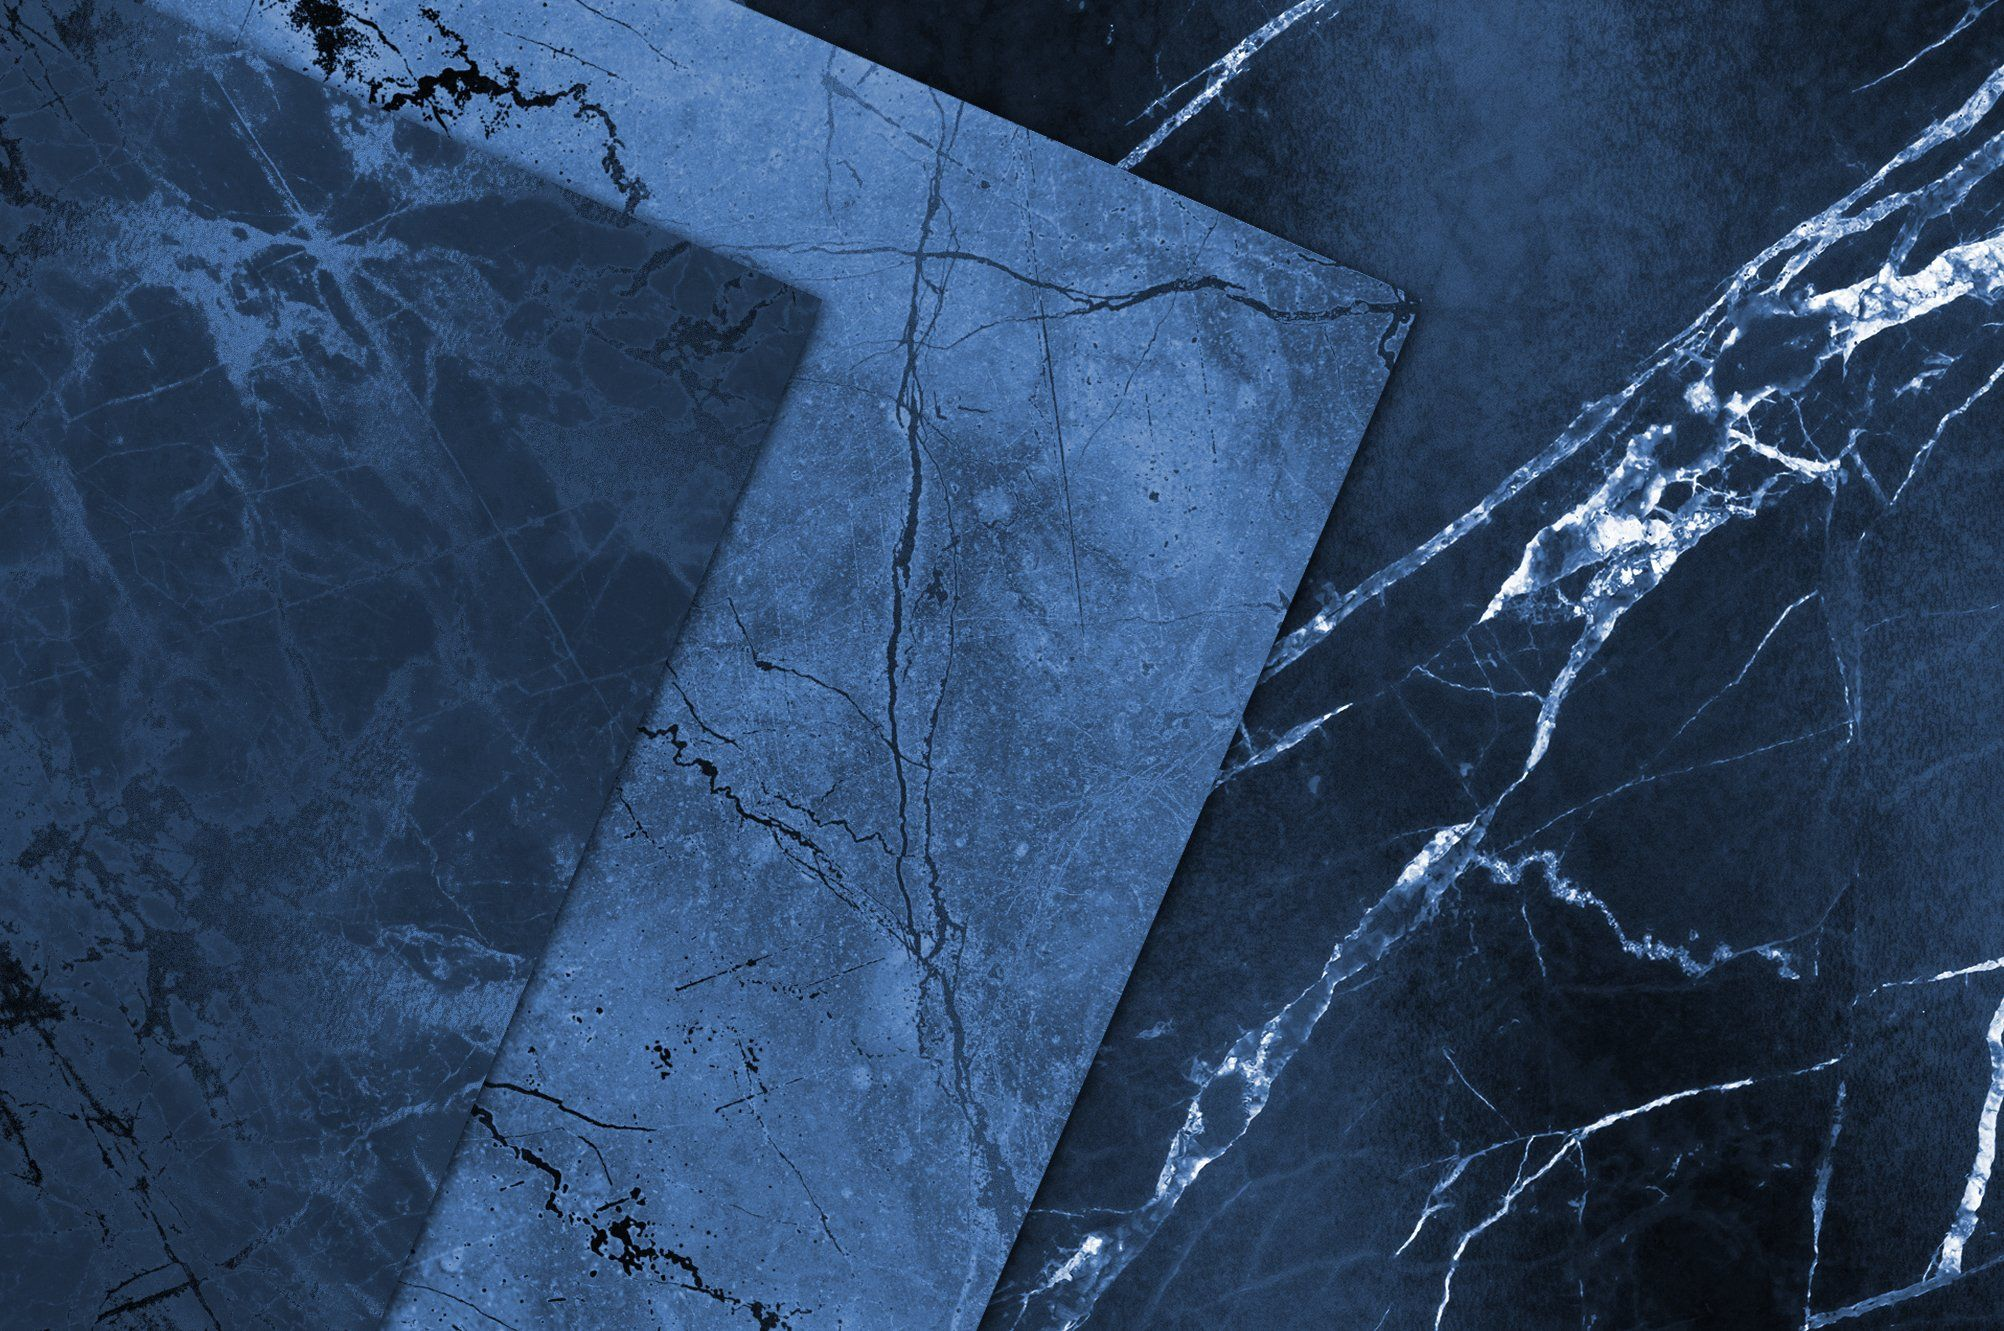 Navy Blue Marble Abstract Textures Blue Marble Texture Blue Marble Textured Background